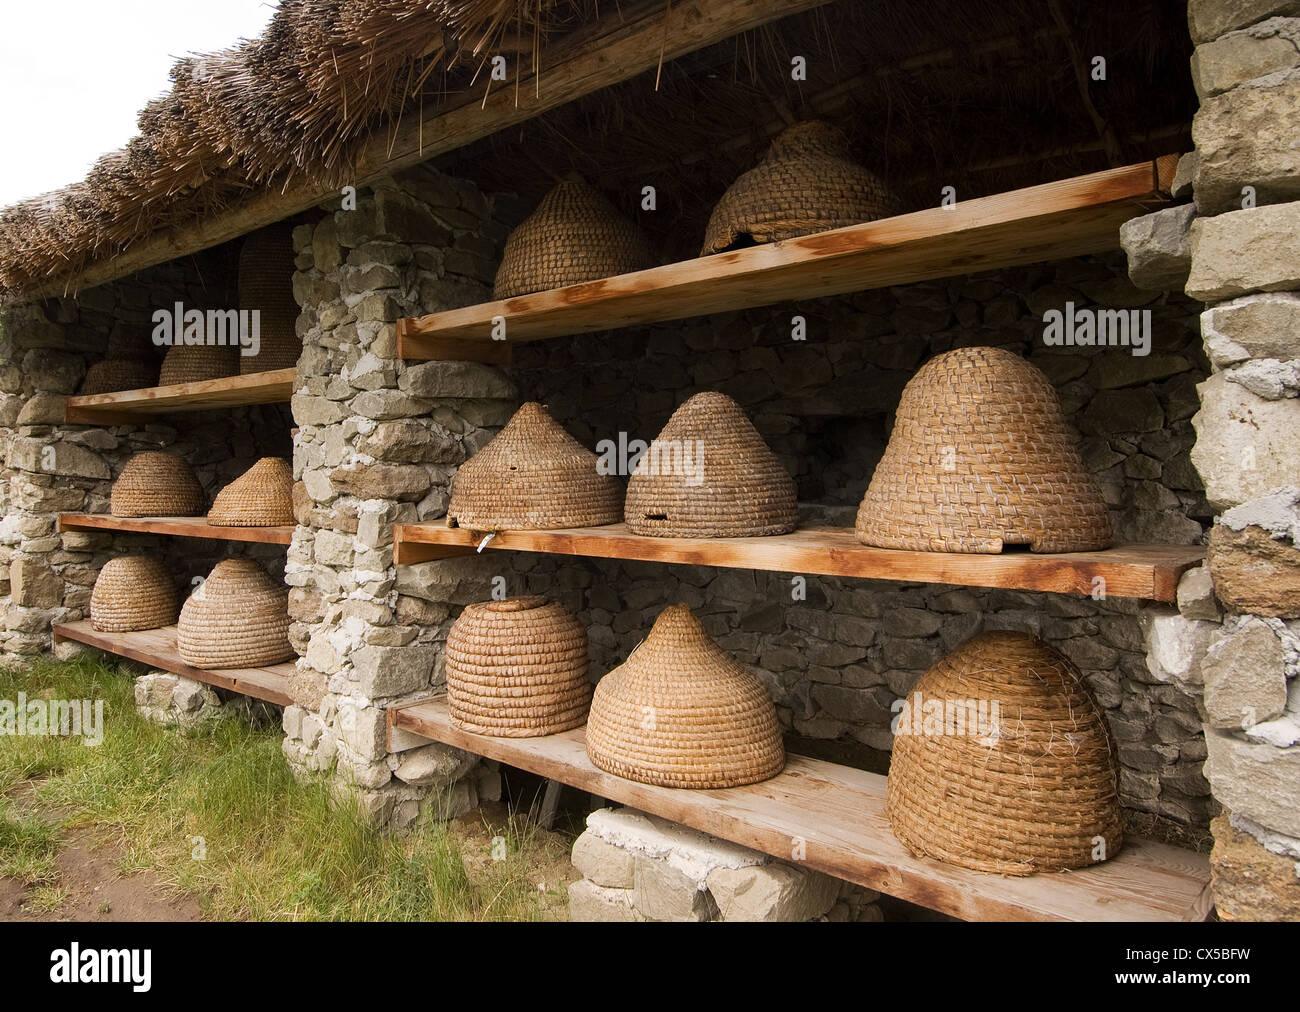 Elk190-2135 Hungary, Szentendre, Open Air Ethnographical Museum, basketry bee hives - Stock Image